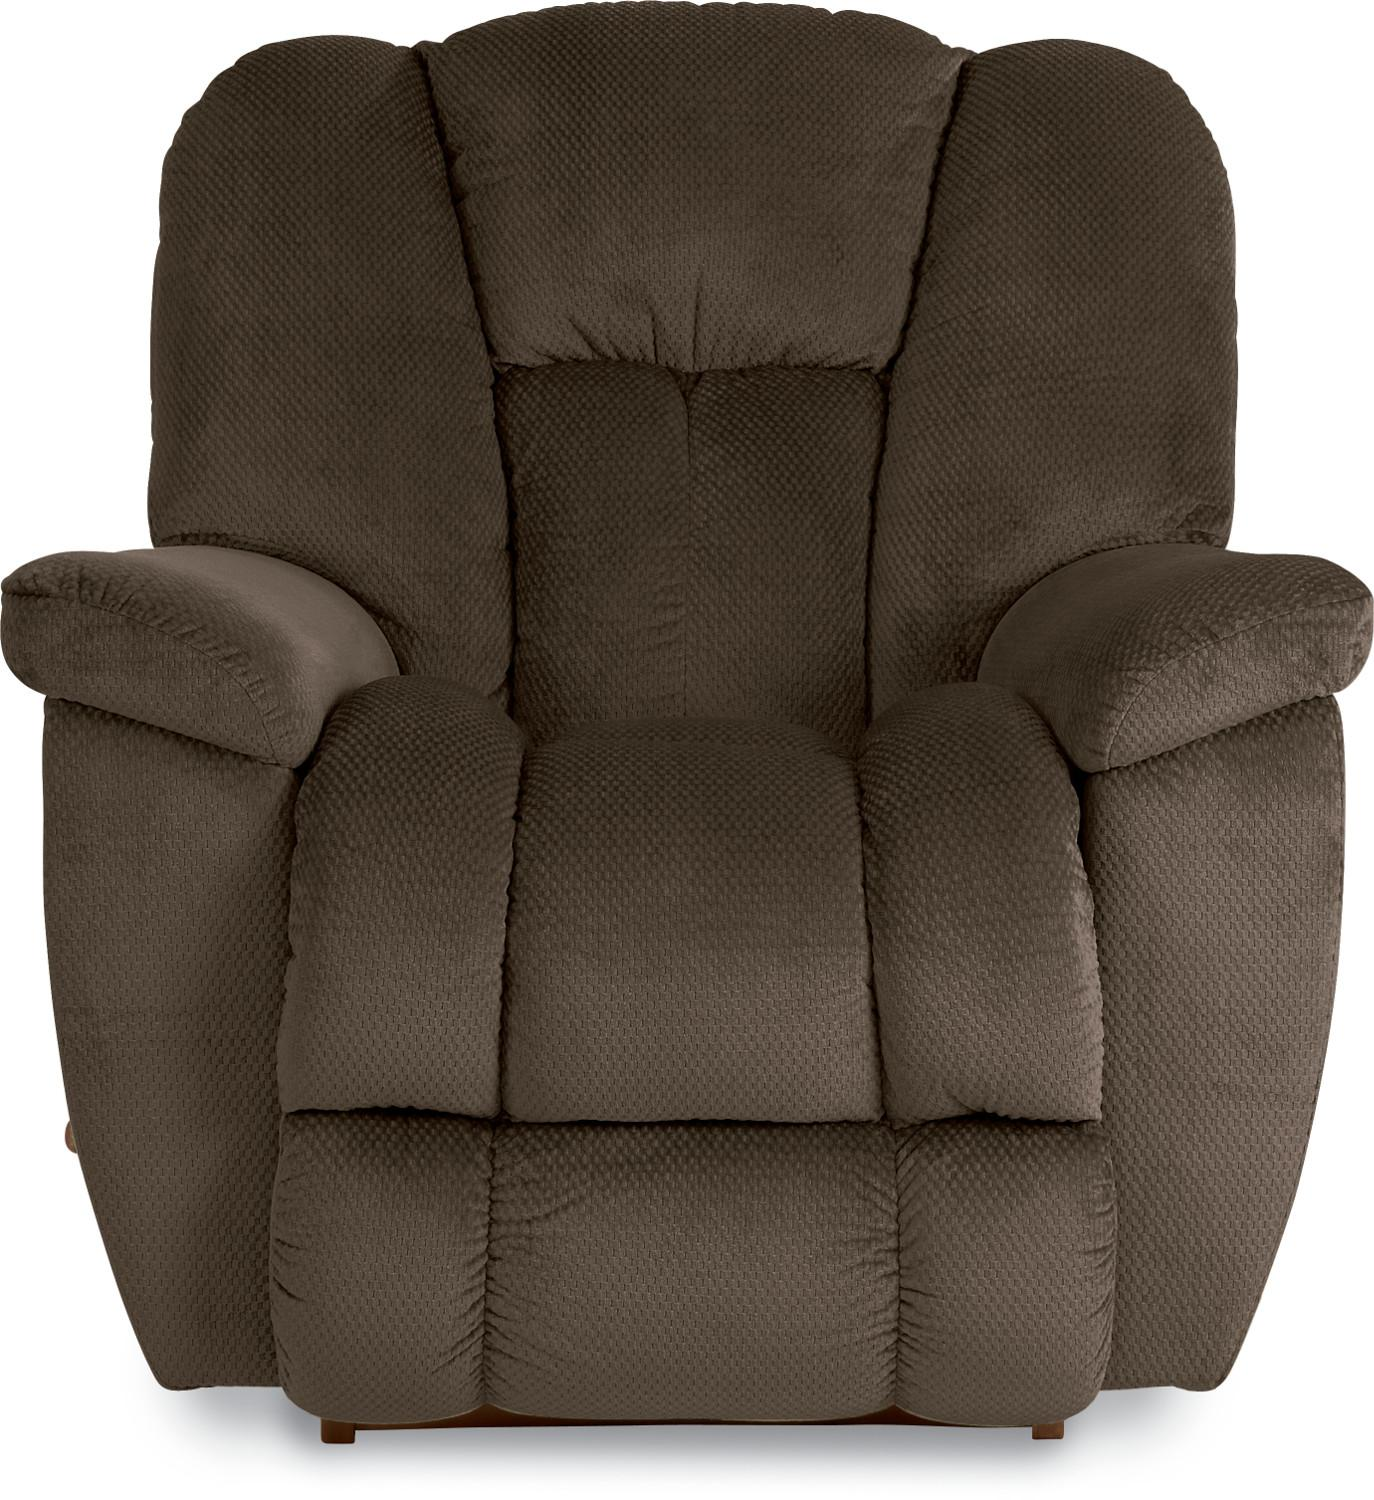 Maverick Rocker Recliner by La-Z-Boy at Factory Direct Furniture